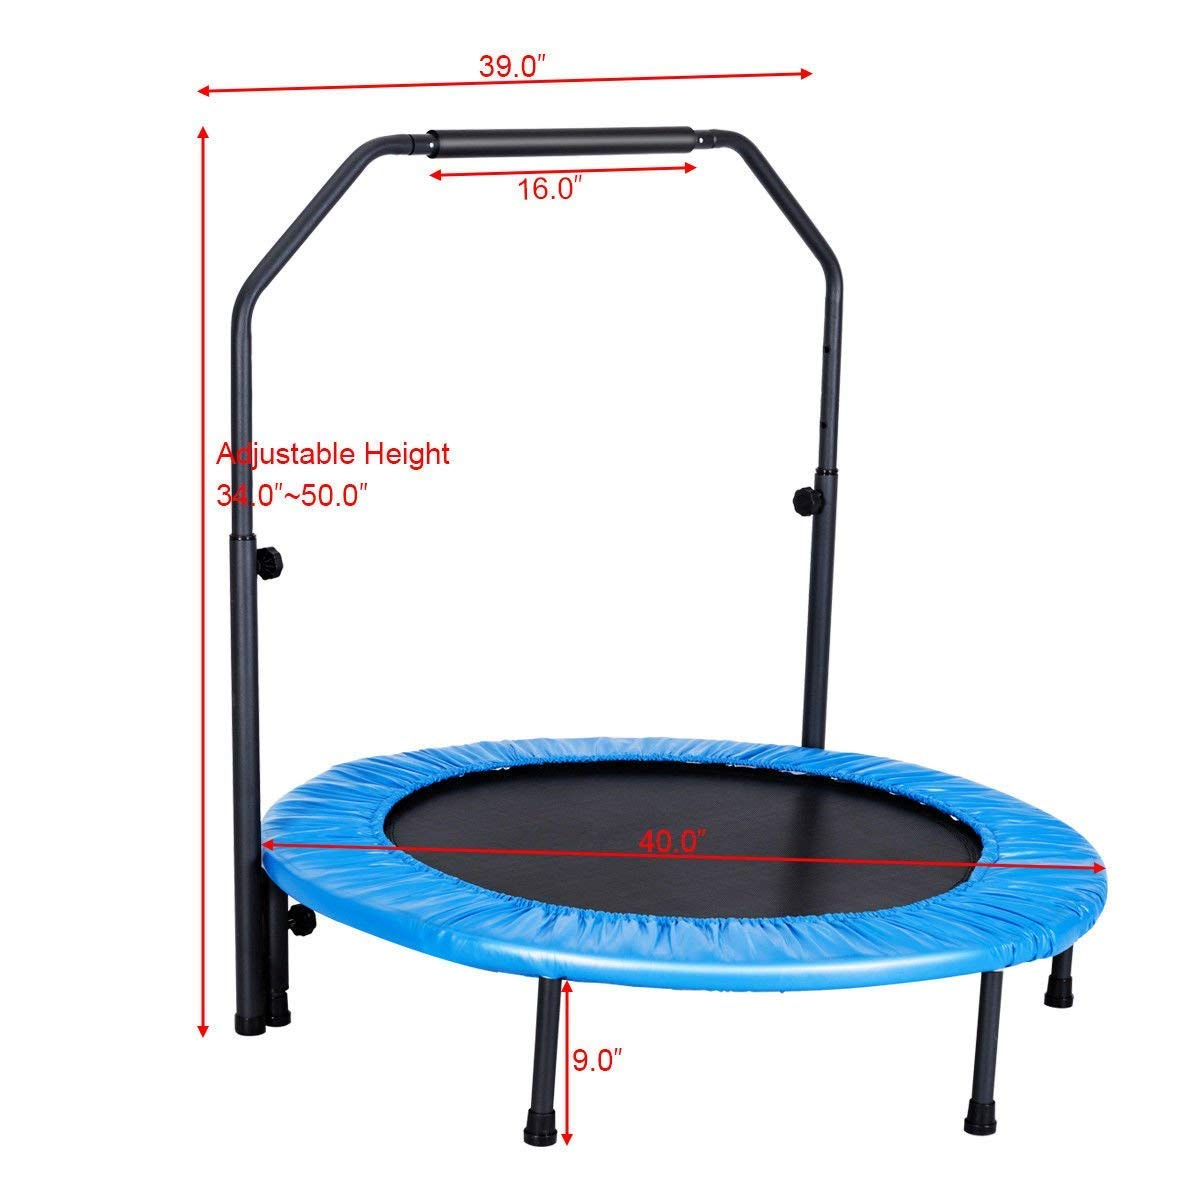 GYMAX Mini Trampoline, Rebounder Exercise Trampoline for Outdoor Indoor Fitness Workout, with Handle Rail by GYMAX (Image #3)